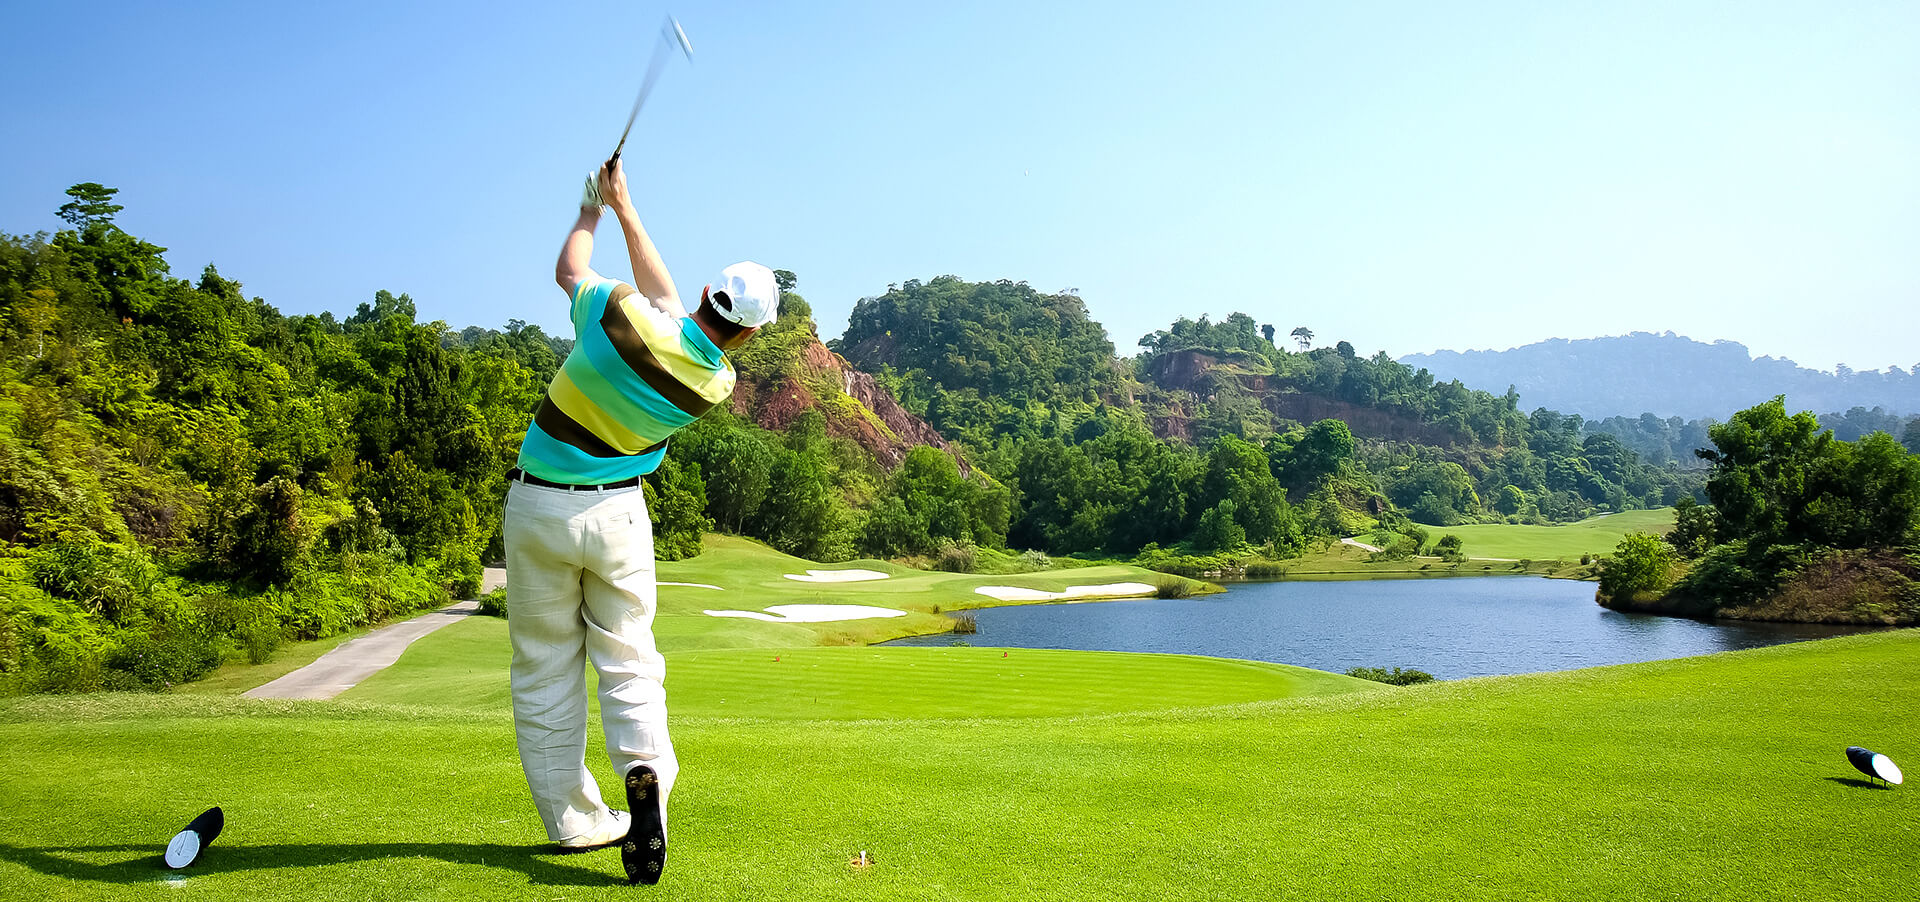 Tinidee Golf Resort@Phuket - Golf